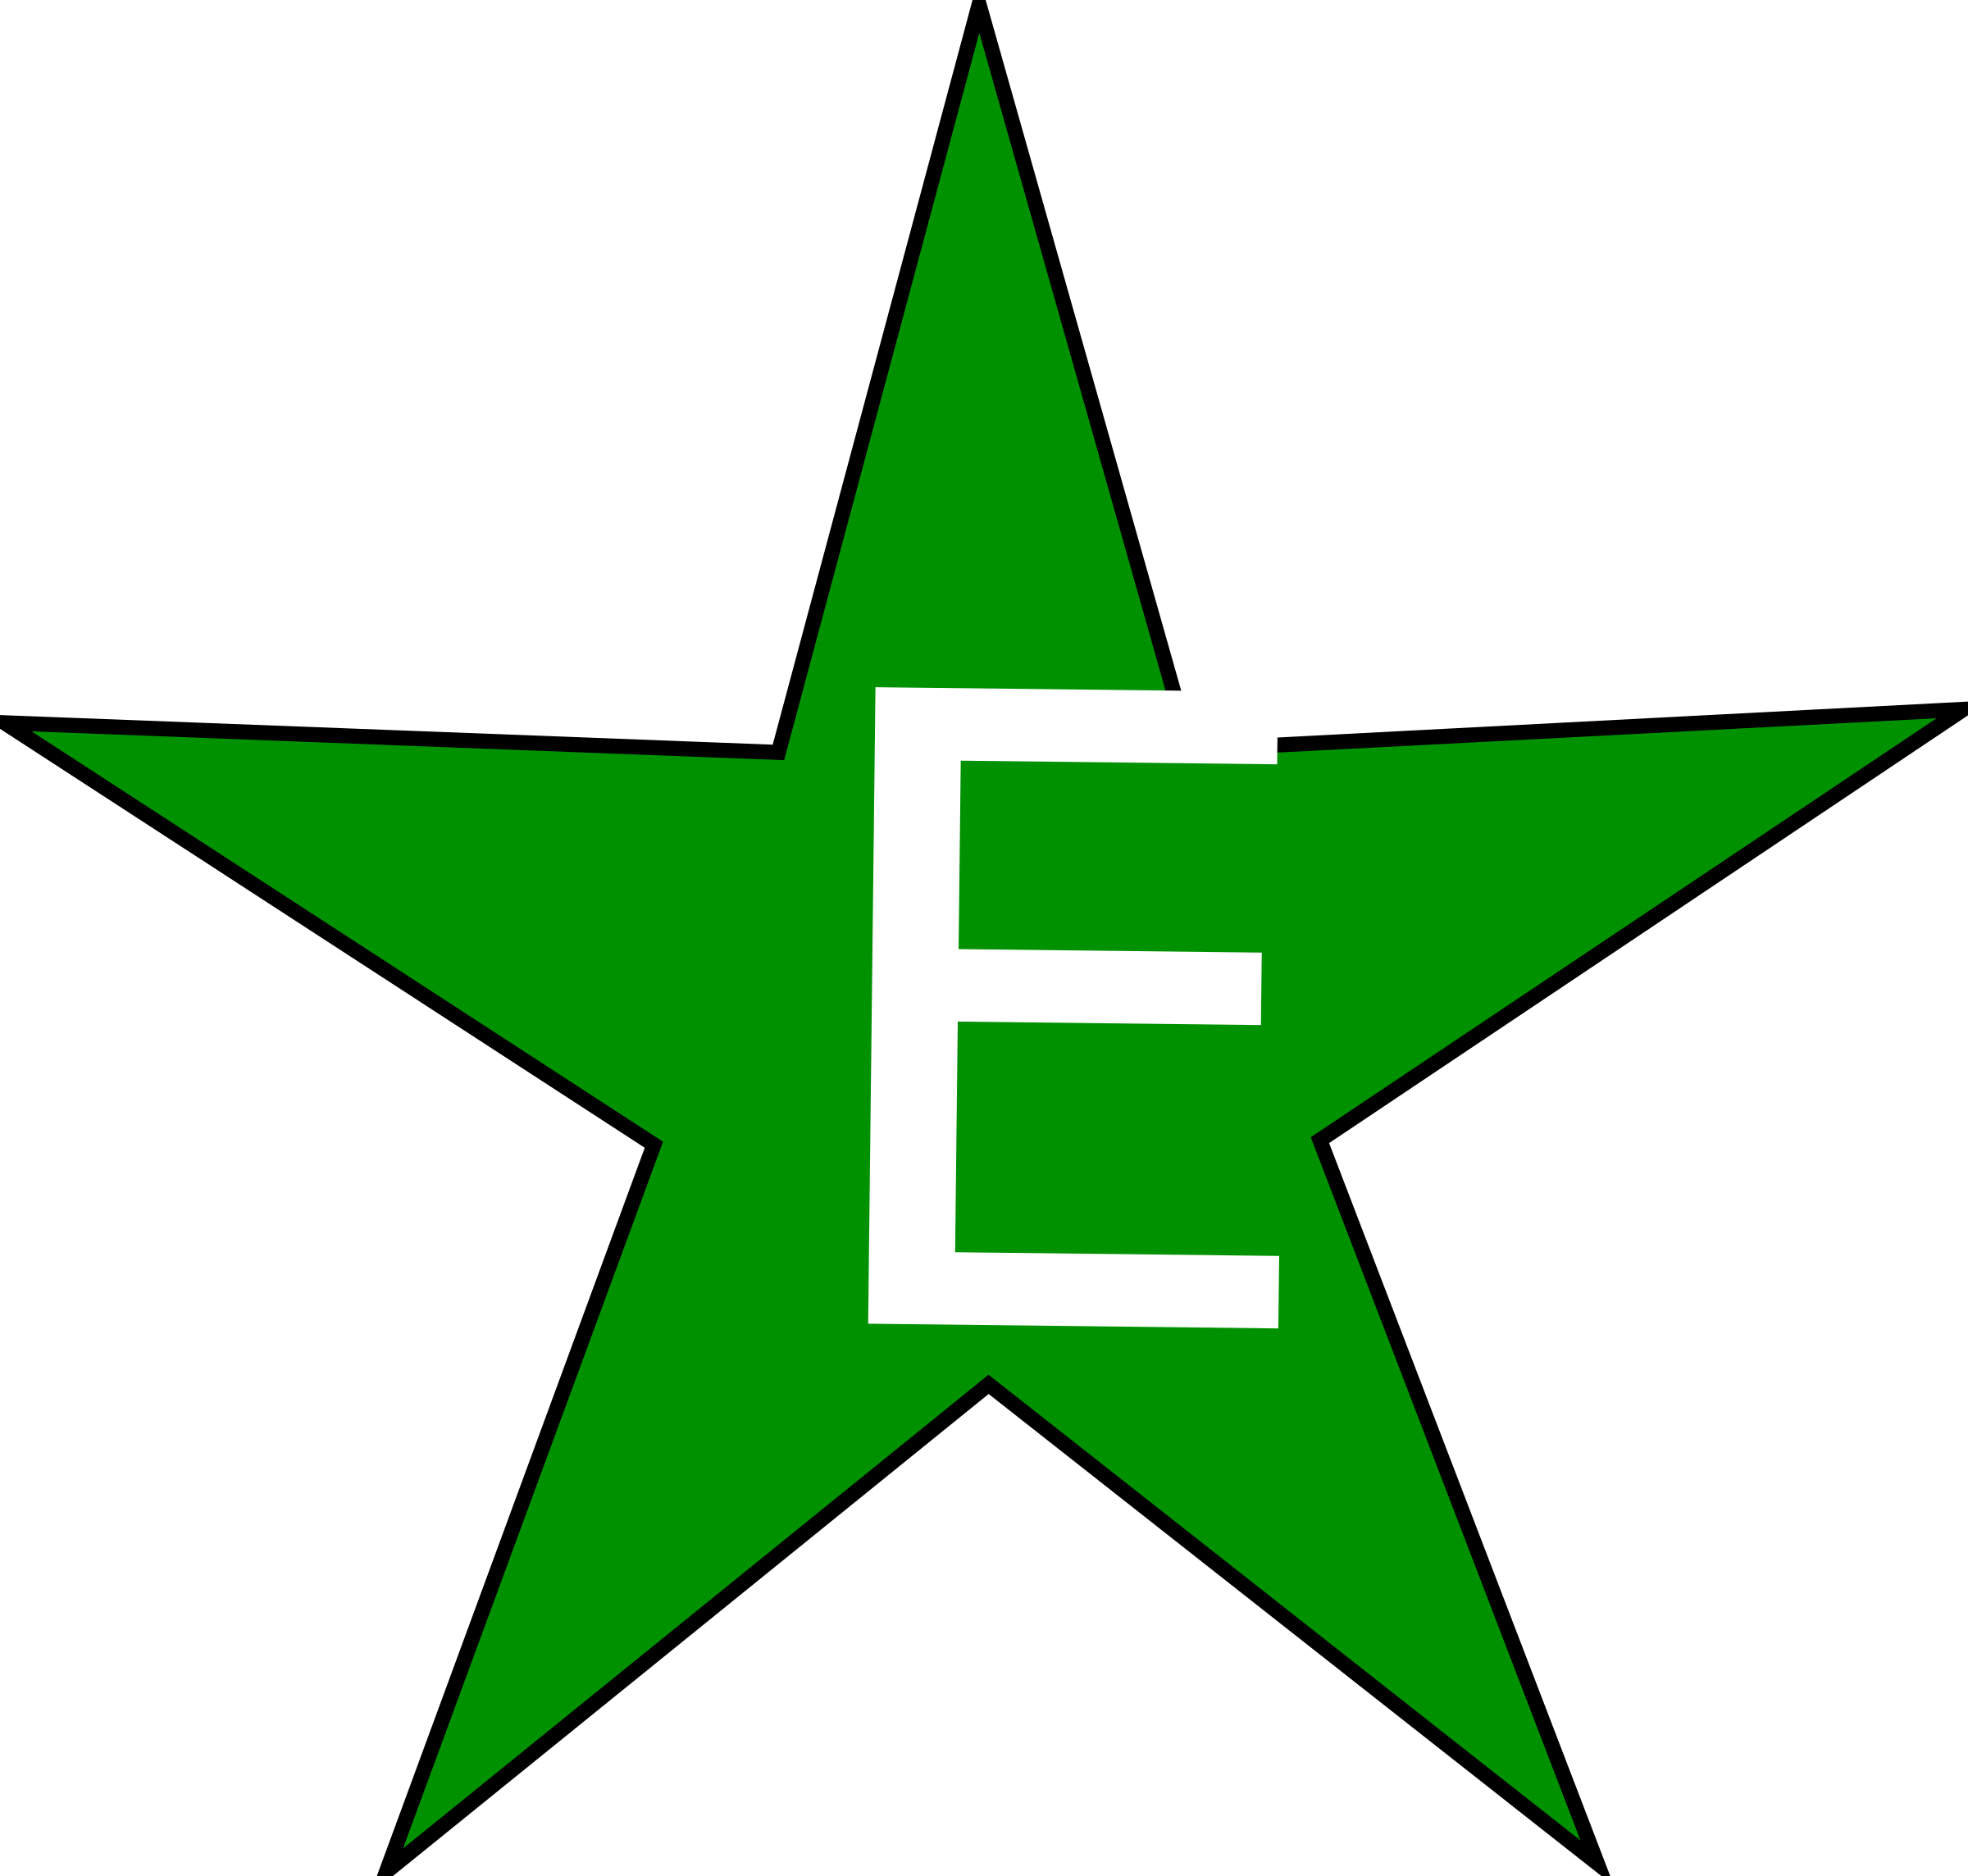 Esperanto star by arturion